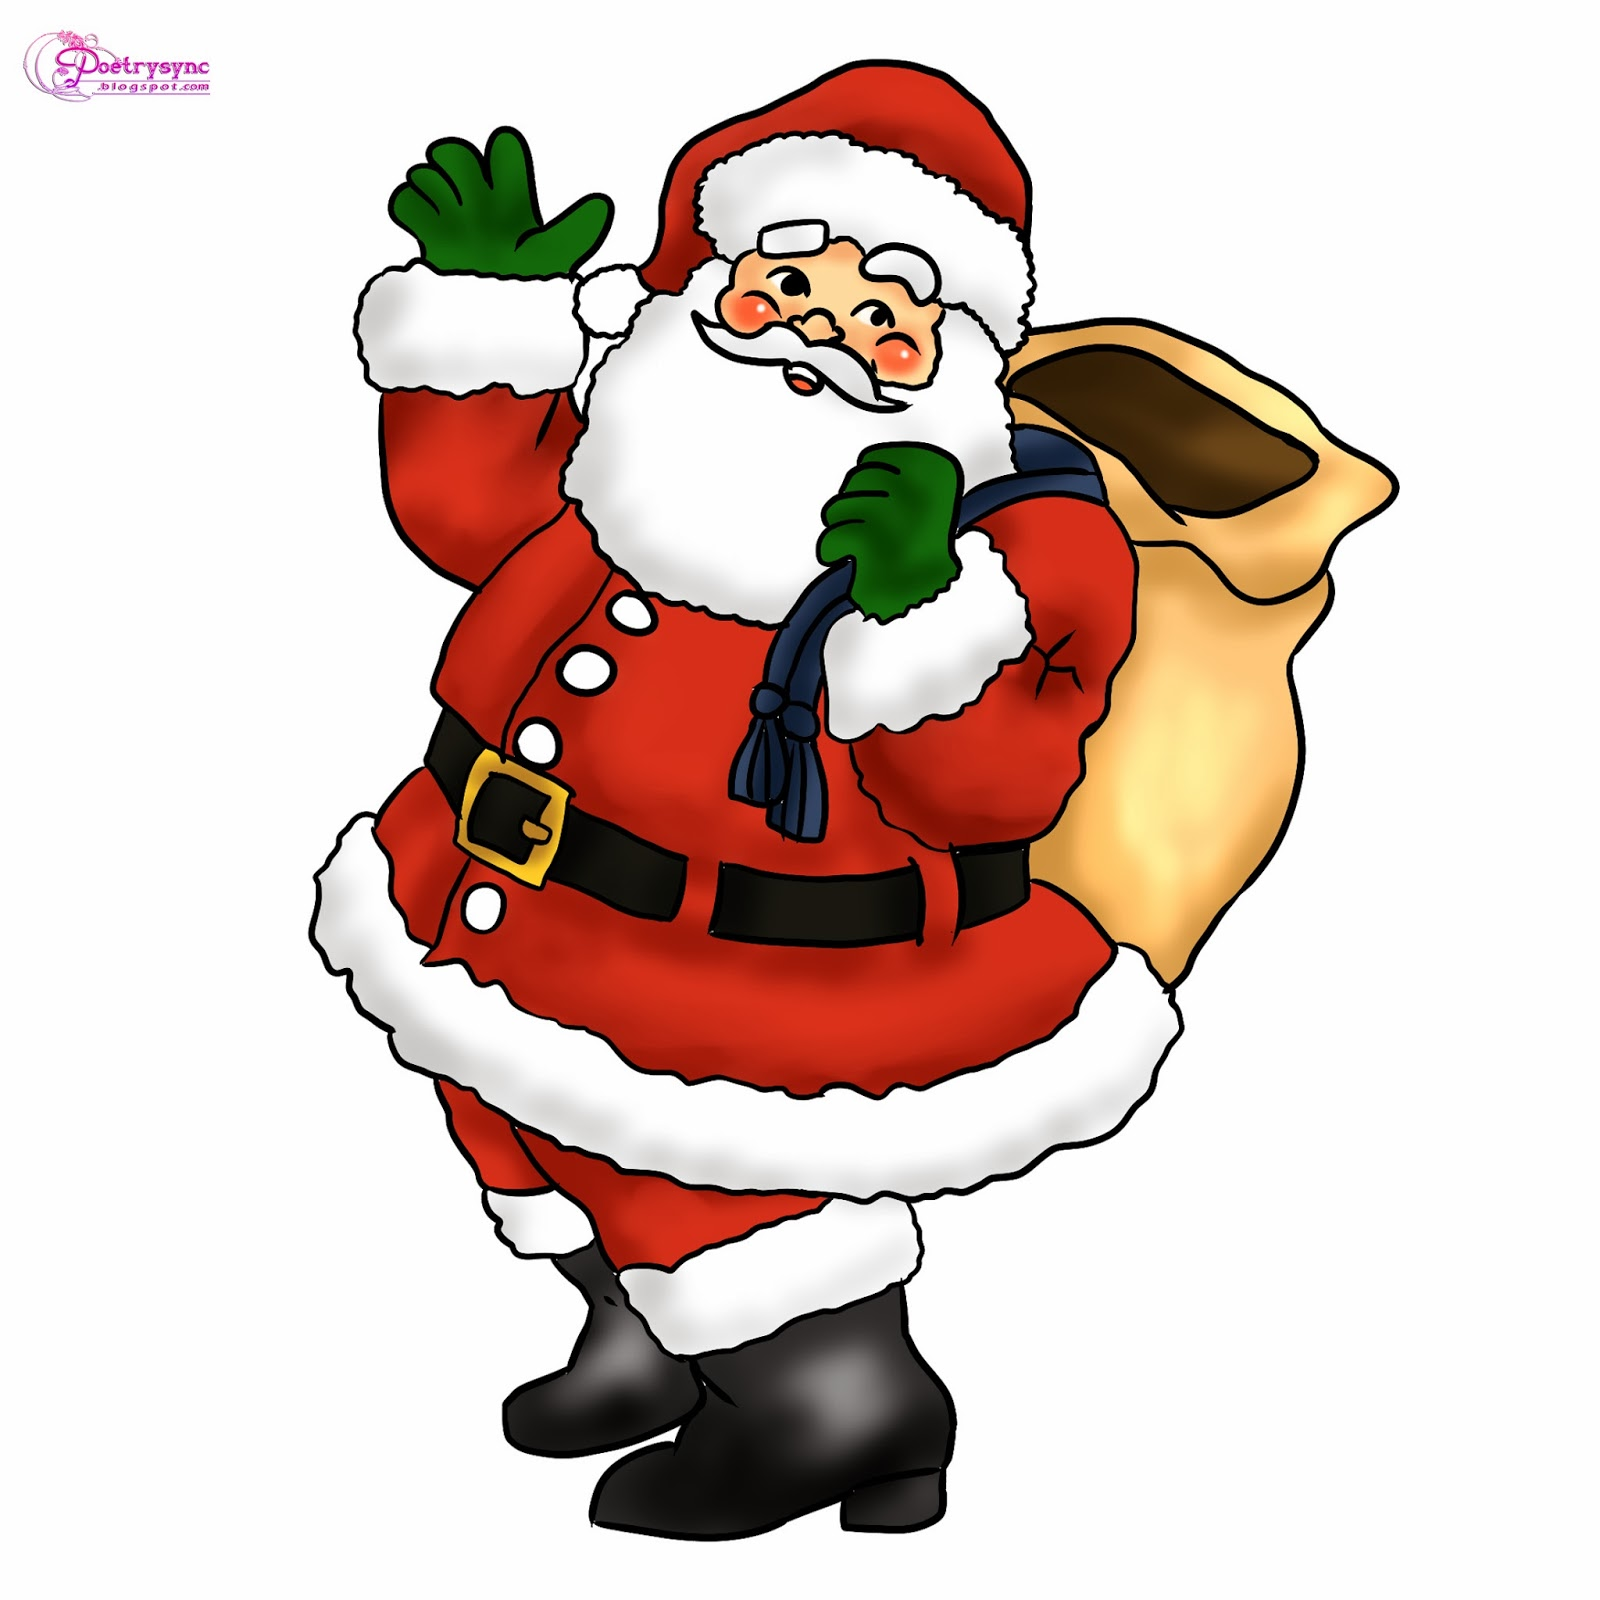 Christmas Clipart Free Cliparts For Work-Christmas clipart free cliparts for work study and-10